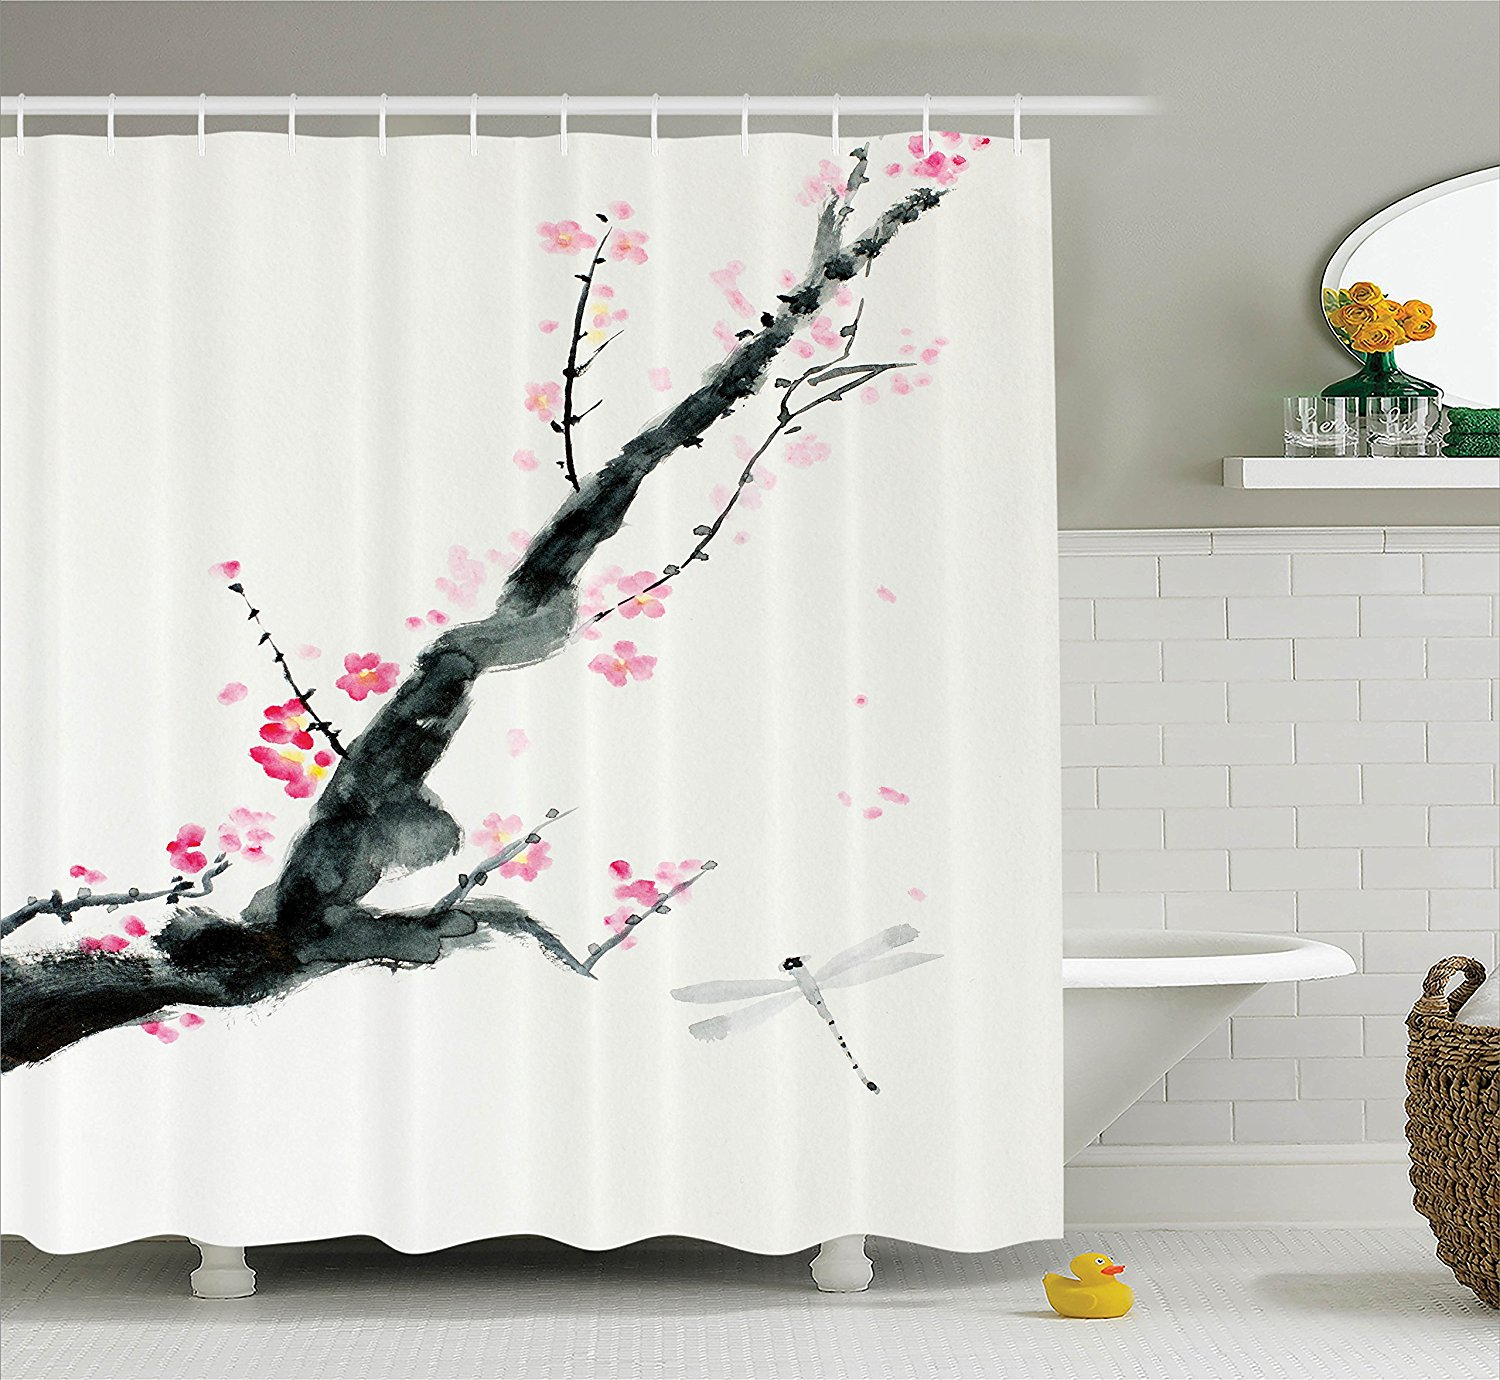 Cheap Pink Bathroom Decor, find Pink Bathroom Decor deals on line at ...